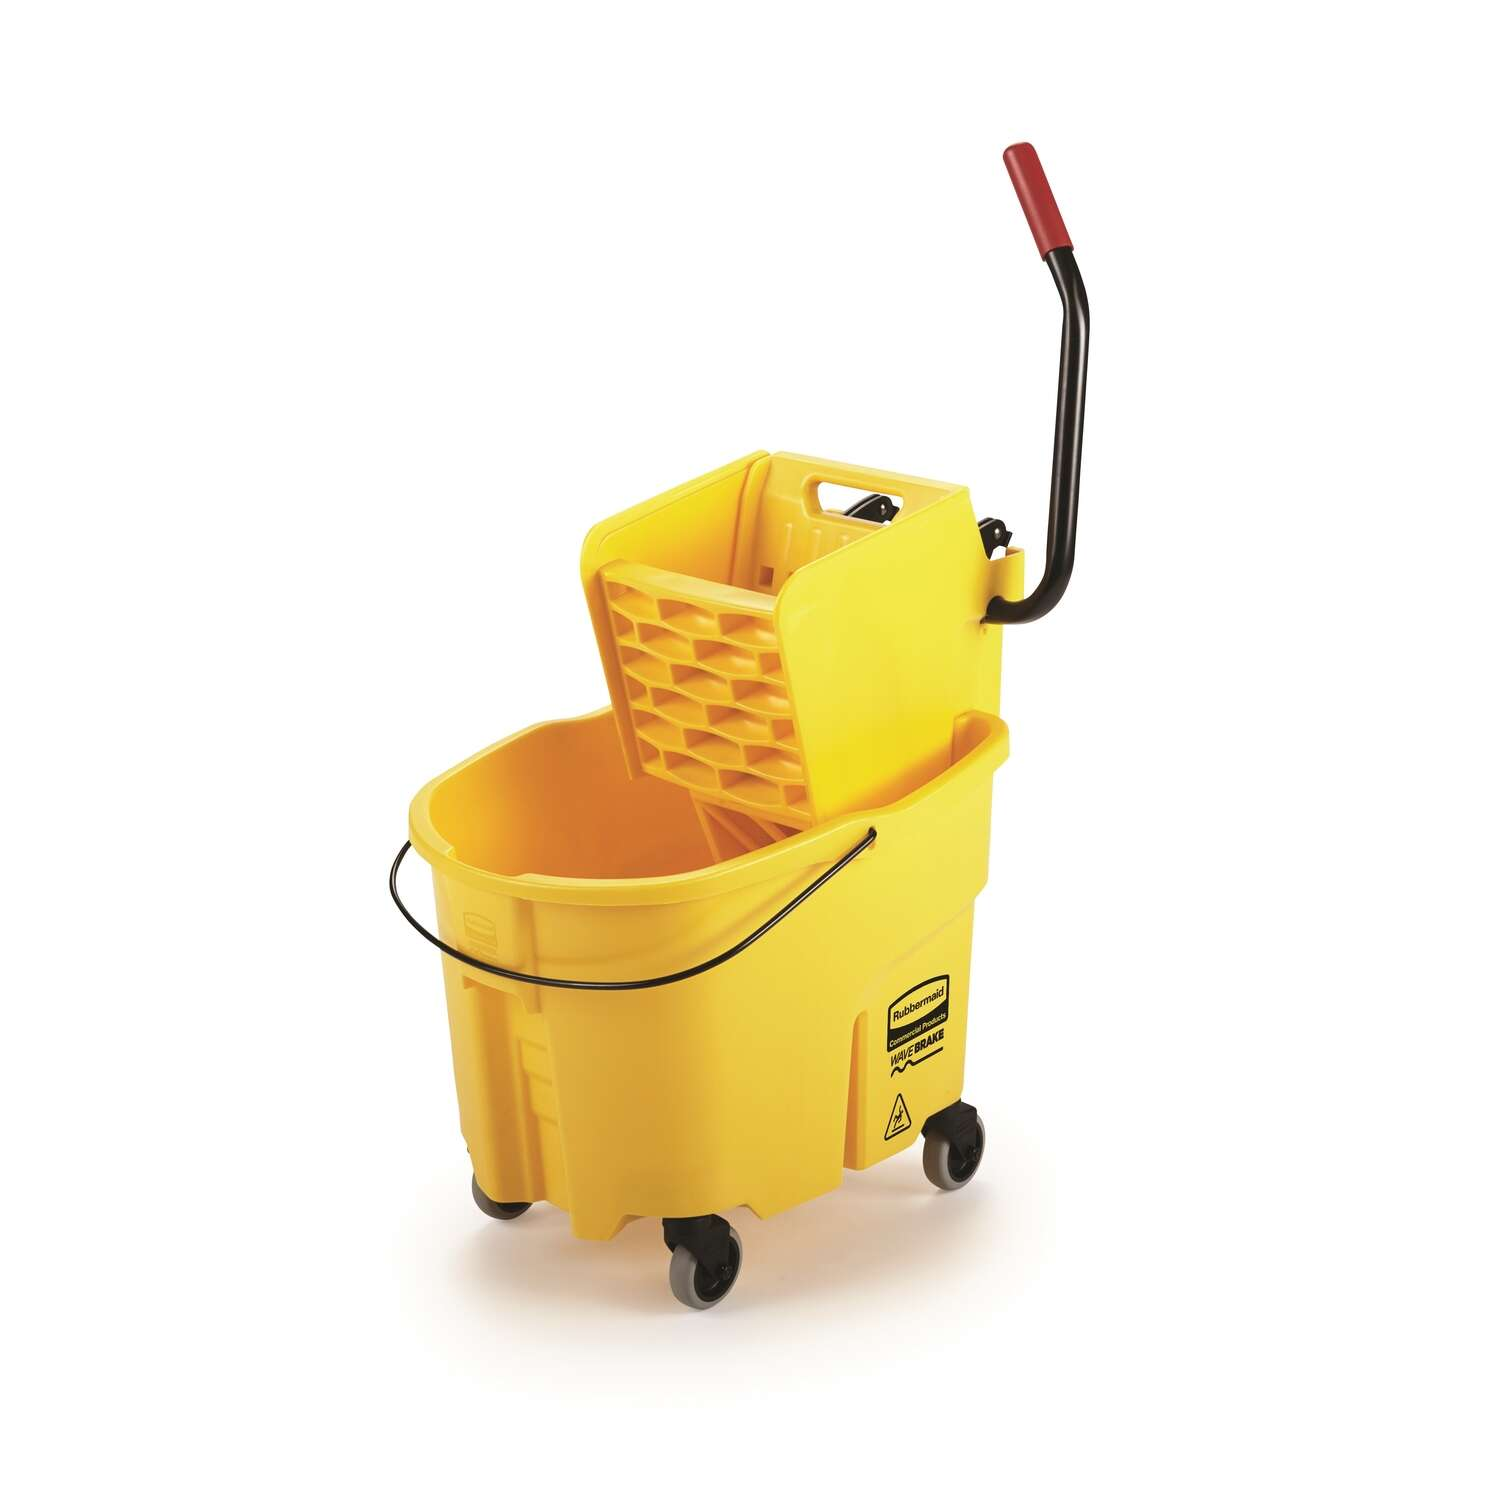 Rubbermaid Commercial WaveBrake 2.0 35 qt. Mop Bucket Yellow